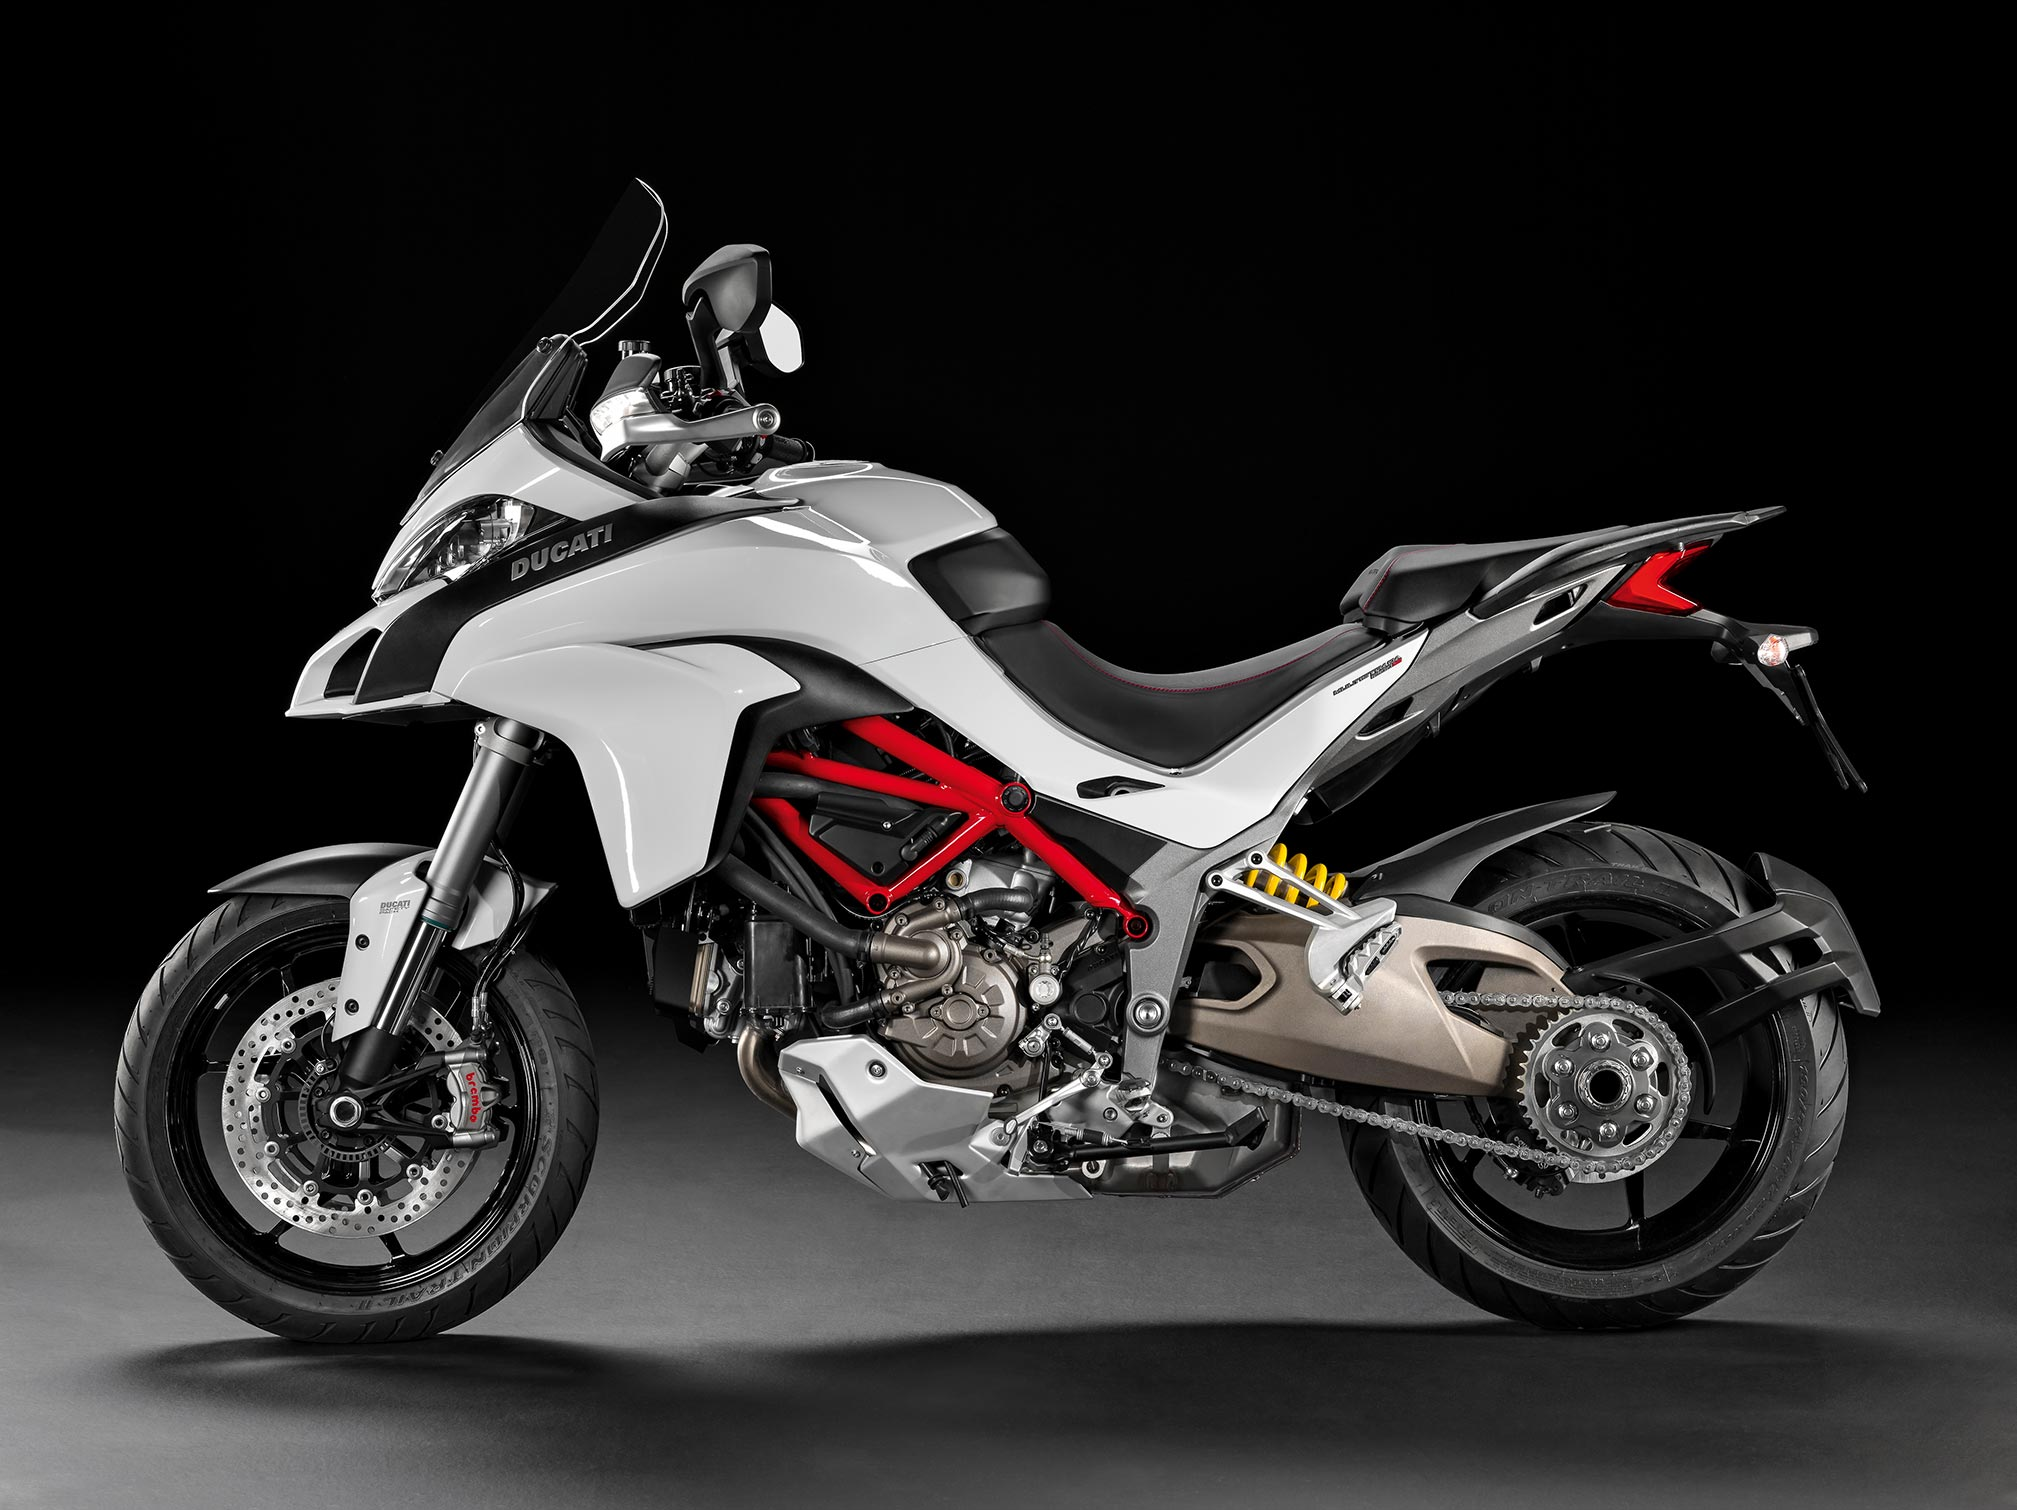 2017 ducati multistrada 1200s review. Black Bedroom Furniture Sets. Home Design Ideas